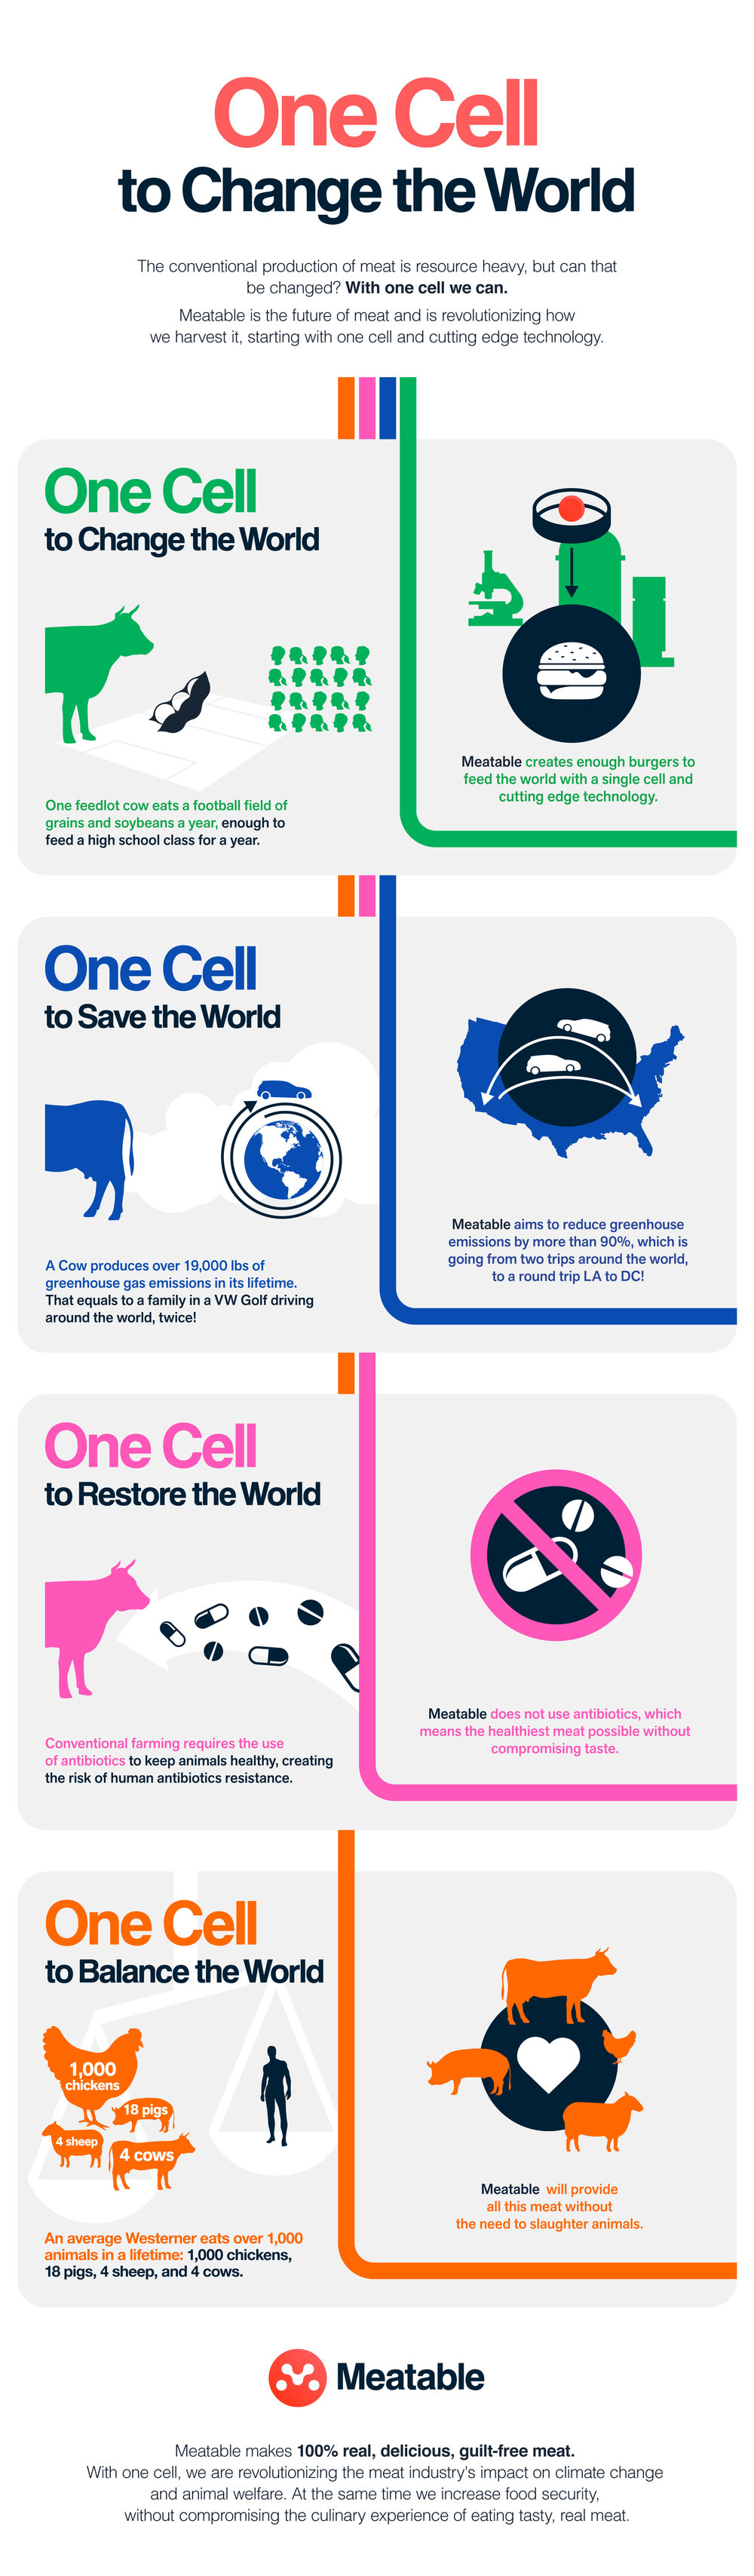 Meatable_infographic-2_version-04-web-ENG.jpg